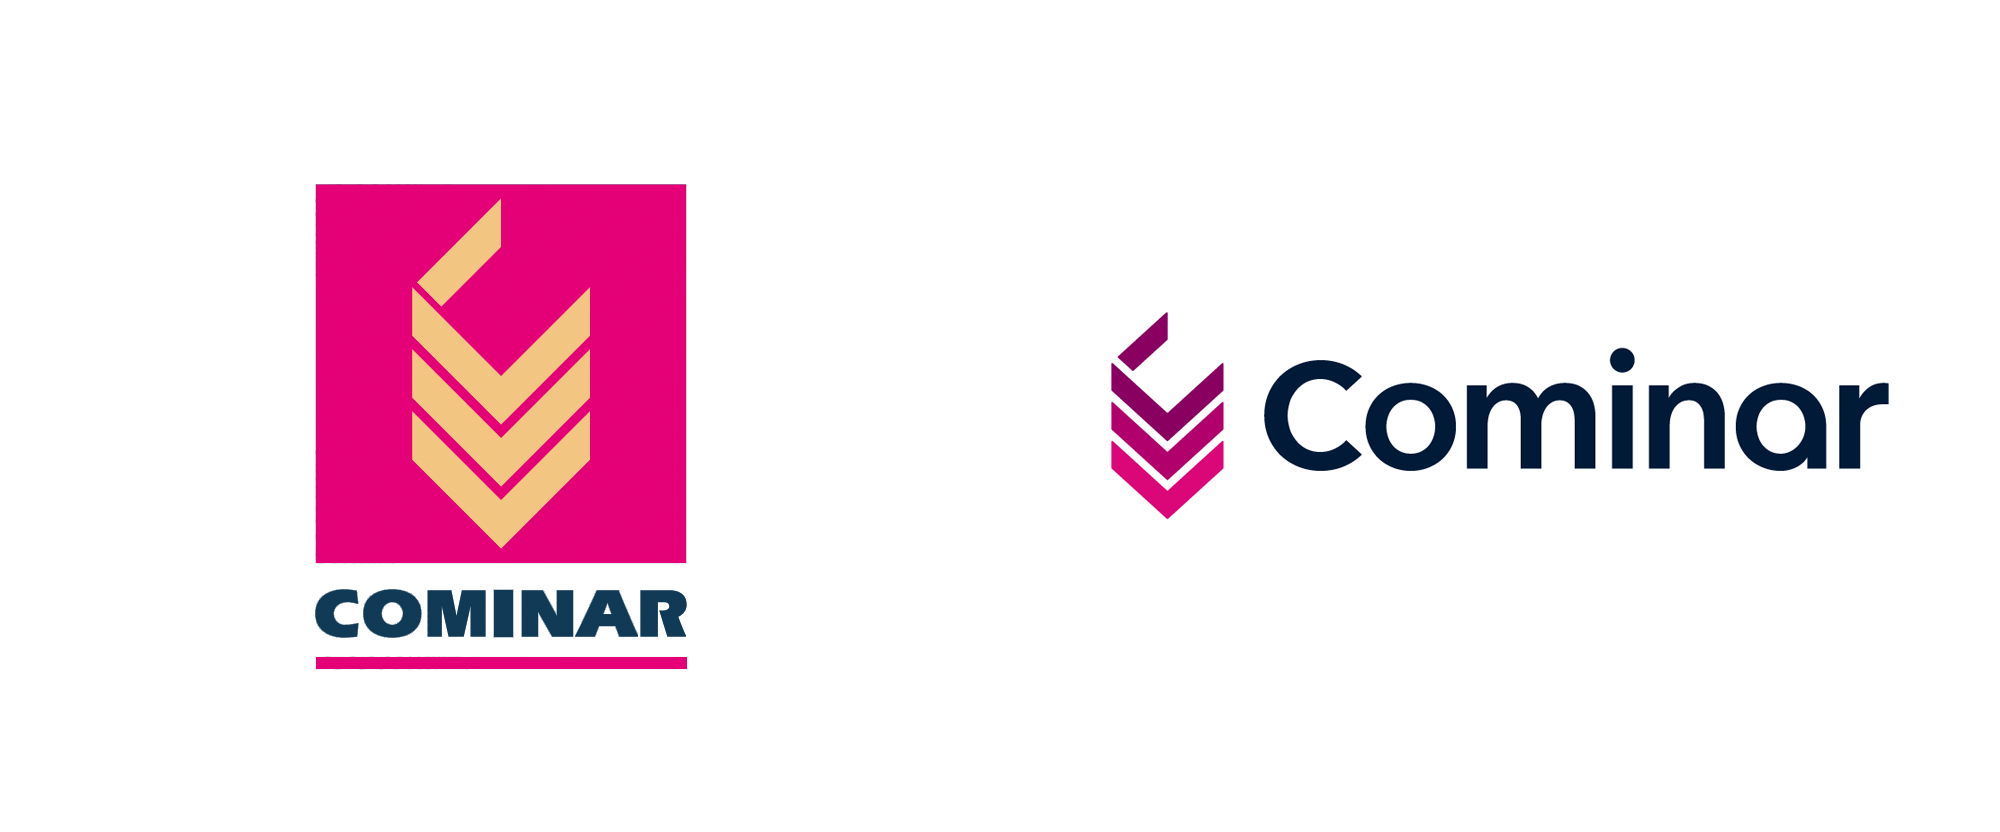 New Logo and Identity for Cominar